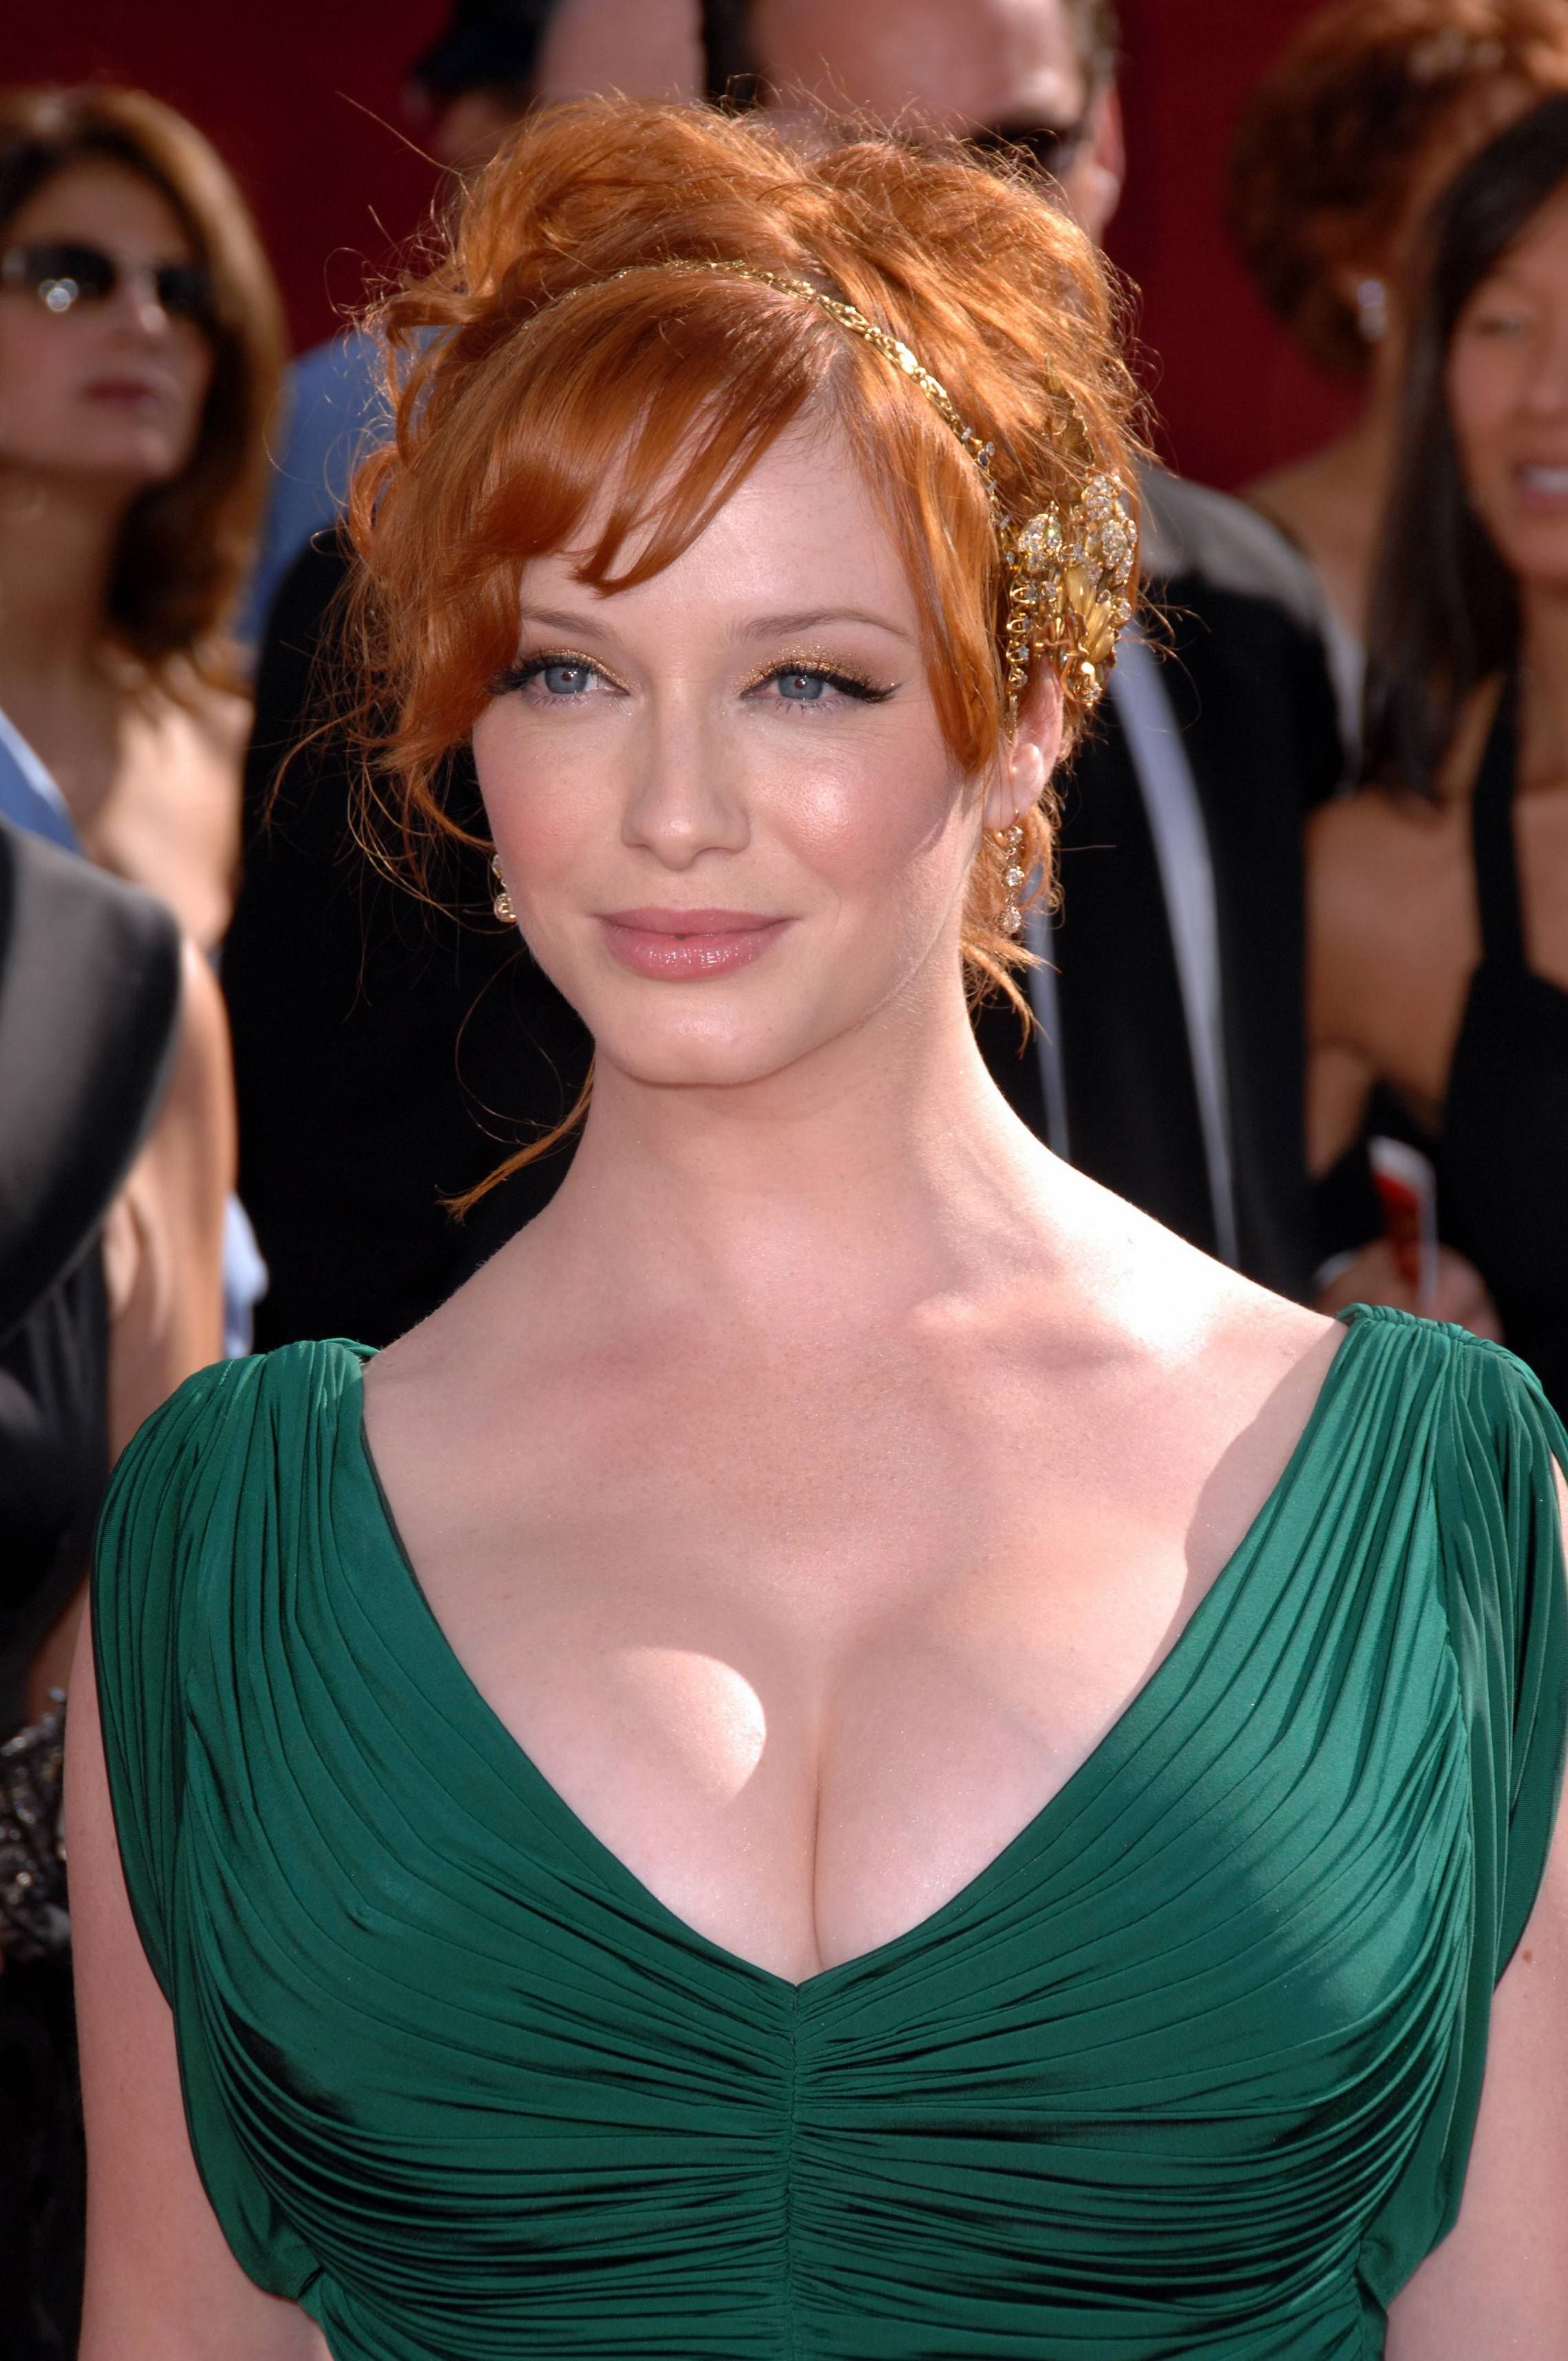 The most beautiful redheads ever